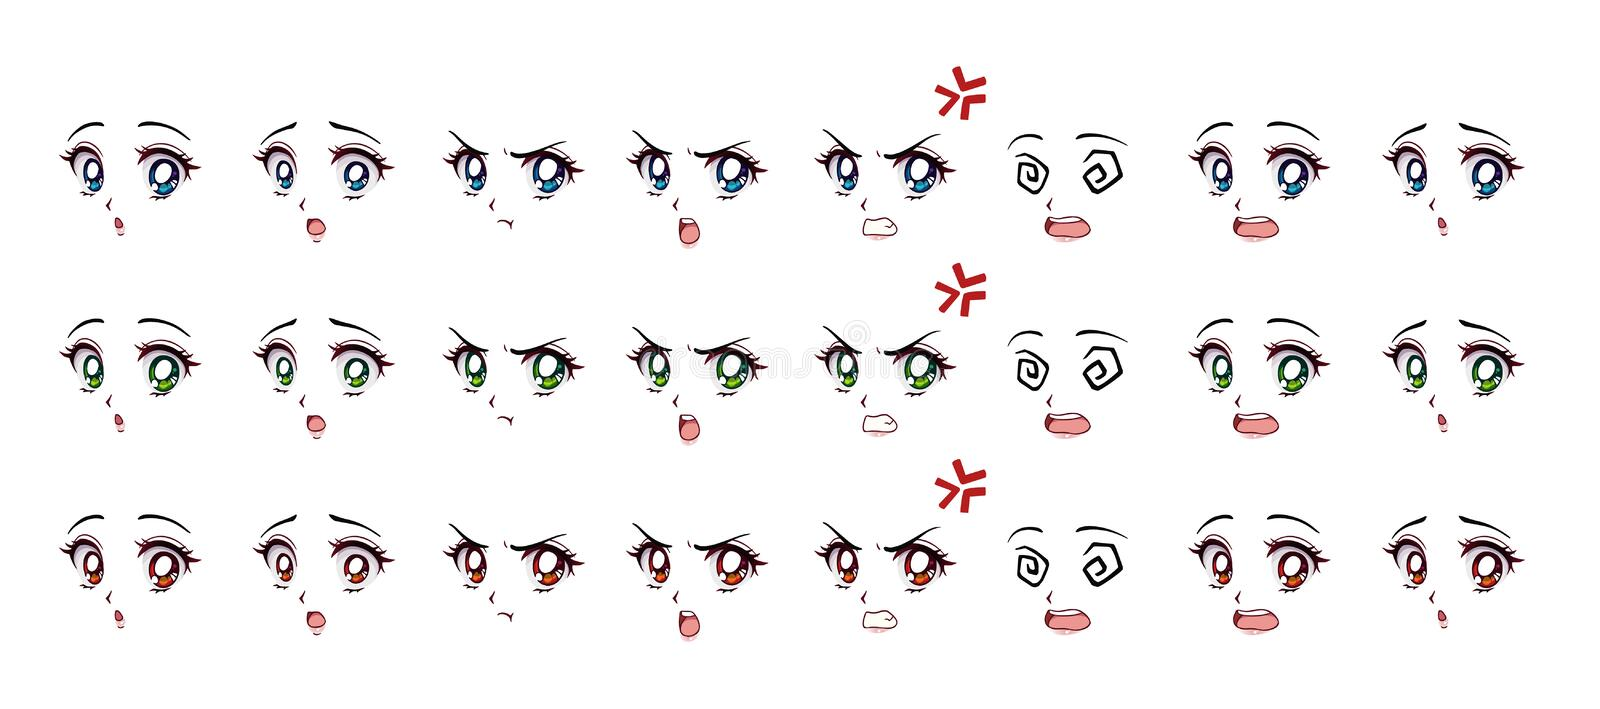 Set of cartoon anime style expressions. Different eyes, mouth, eyebrows. Three different colors red, green, blue. Hand drawn vector illustration isolated on stock illustration